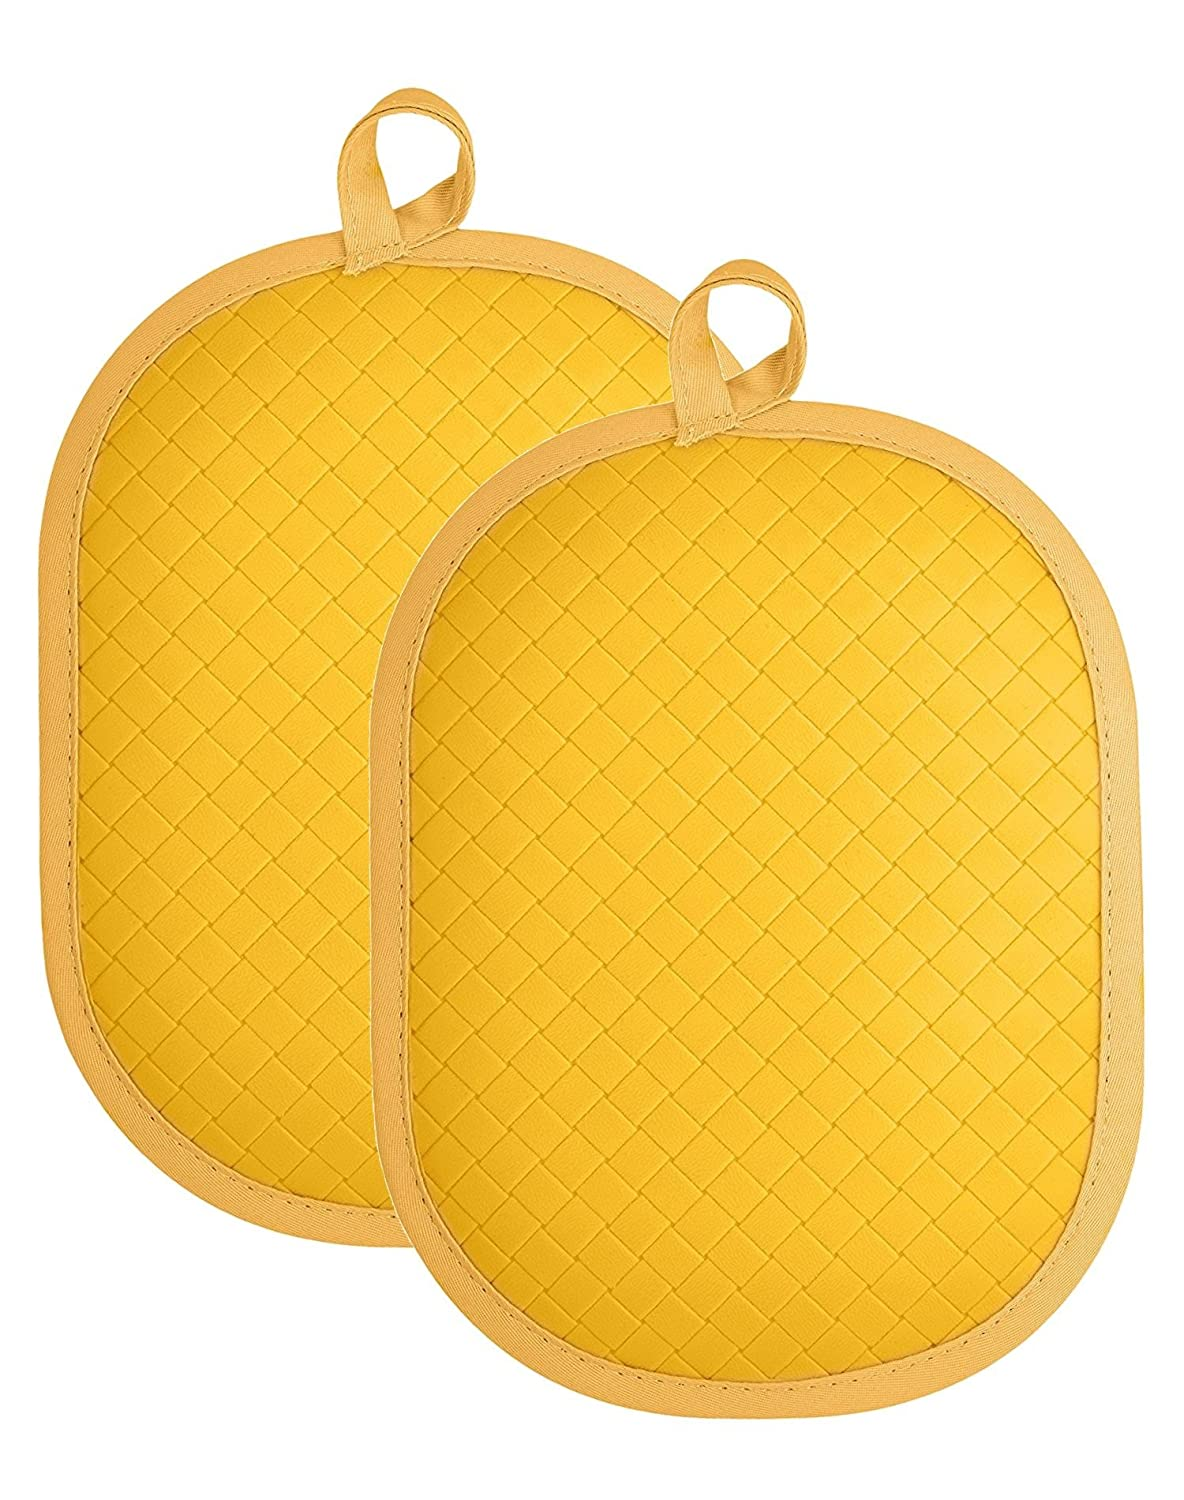 "Rachael Ray Cotton Pot Holder/Hot Pad & Trivet with Silicone Grip, Heat Resistant up to 500 Degrees, Material, 12x7.5"", Yellow 2pk"